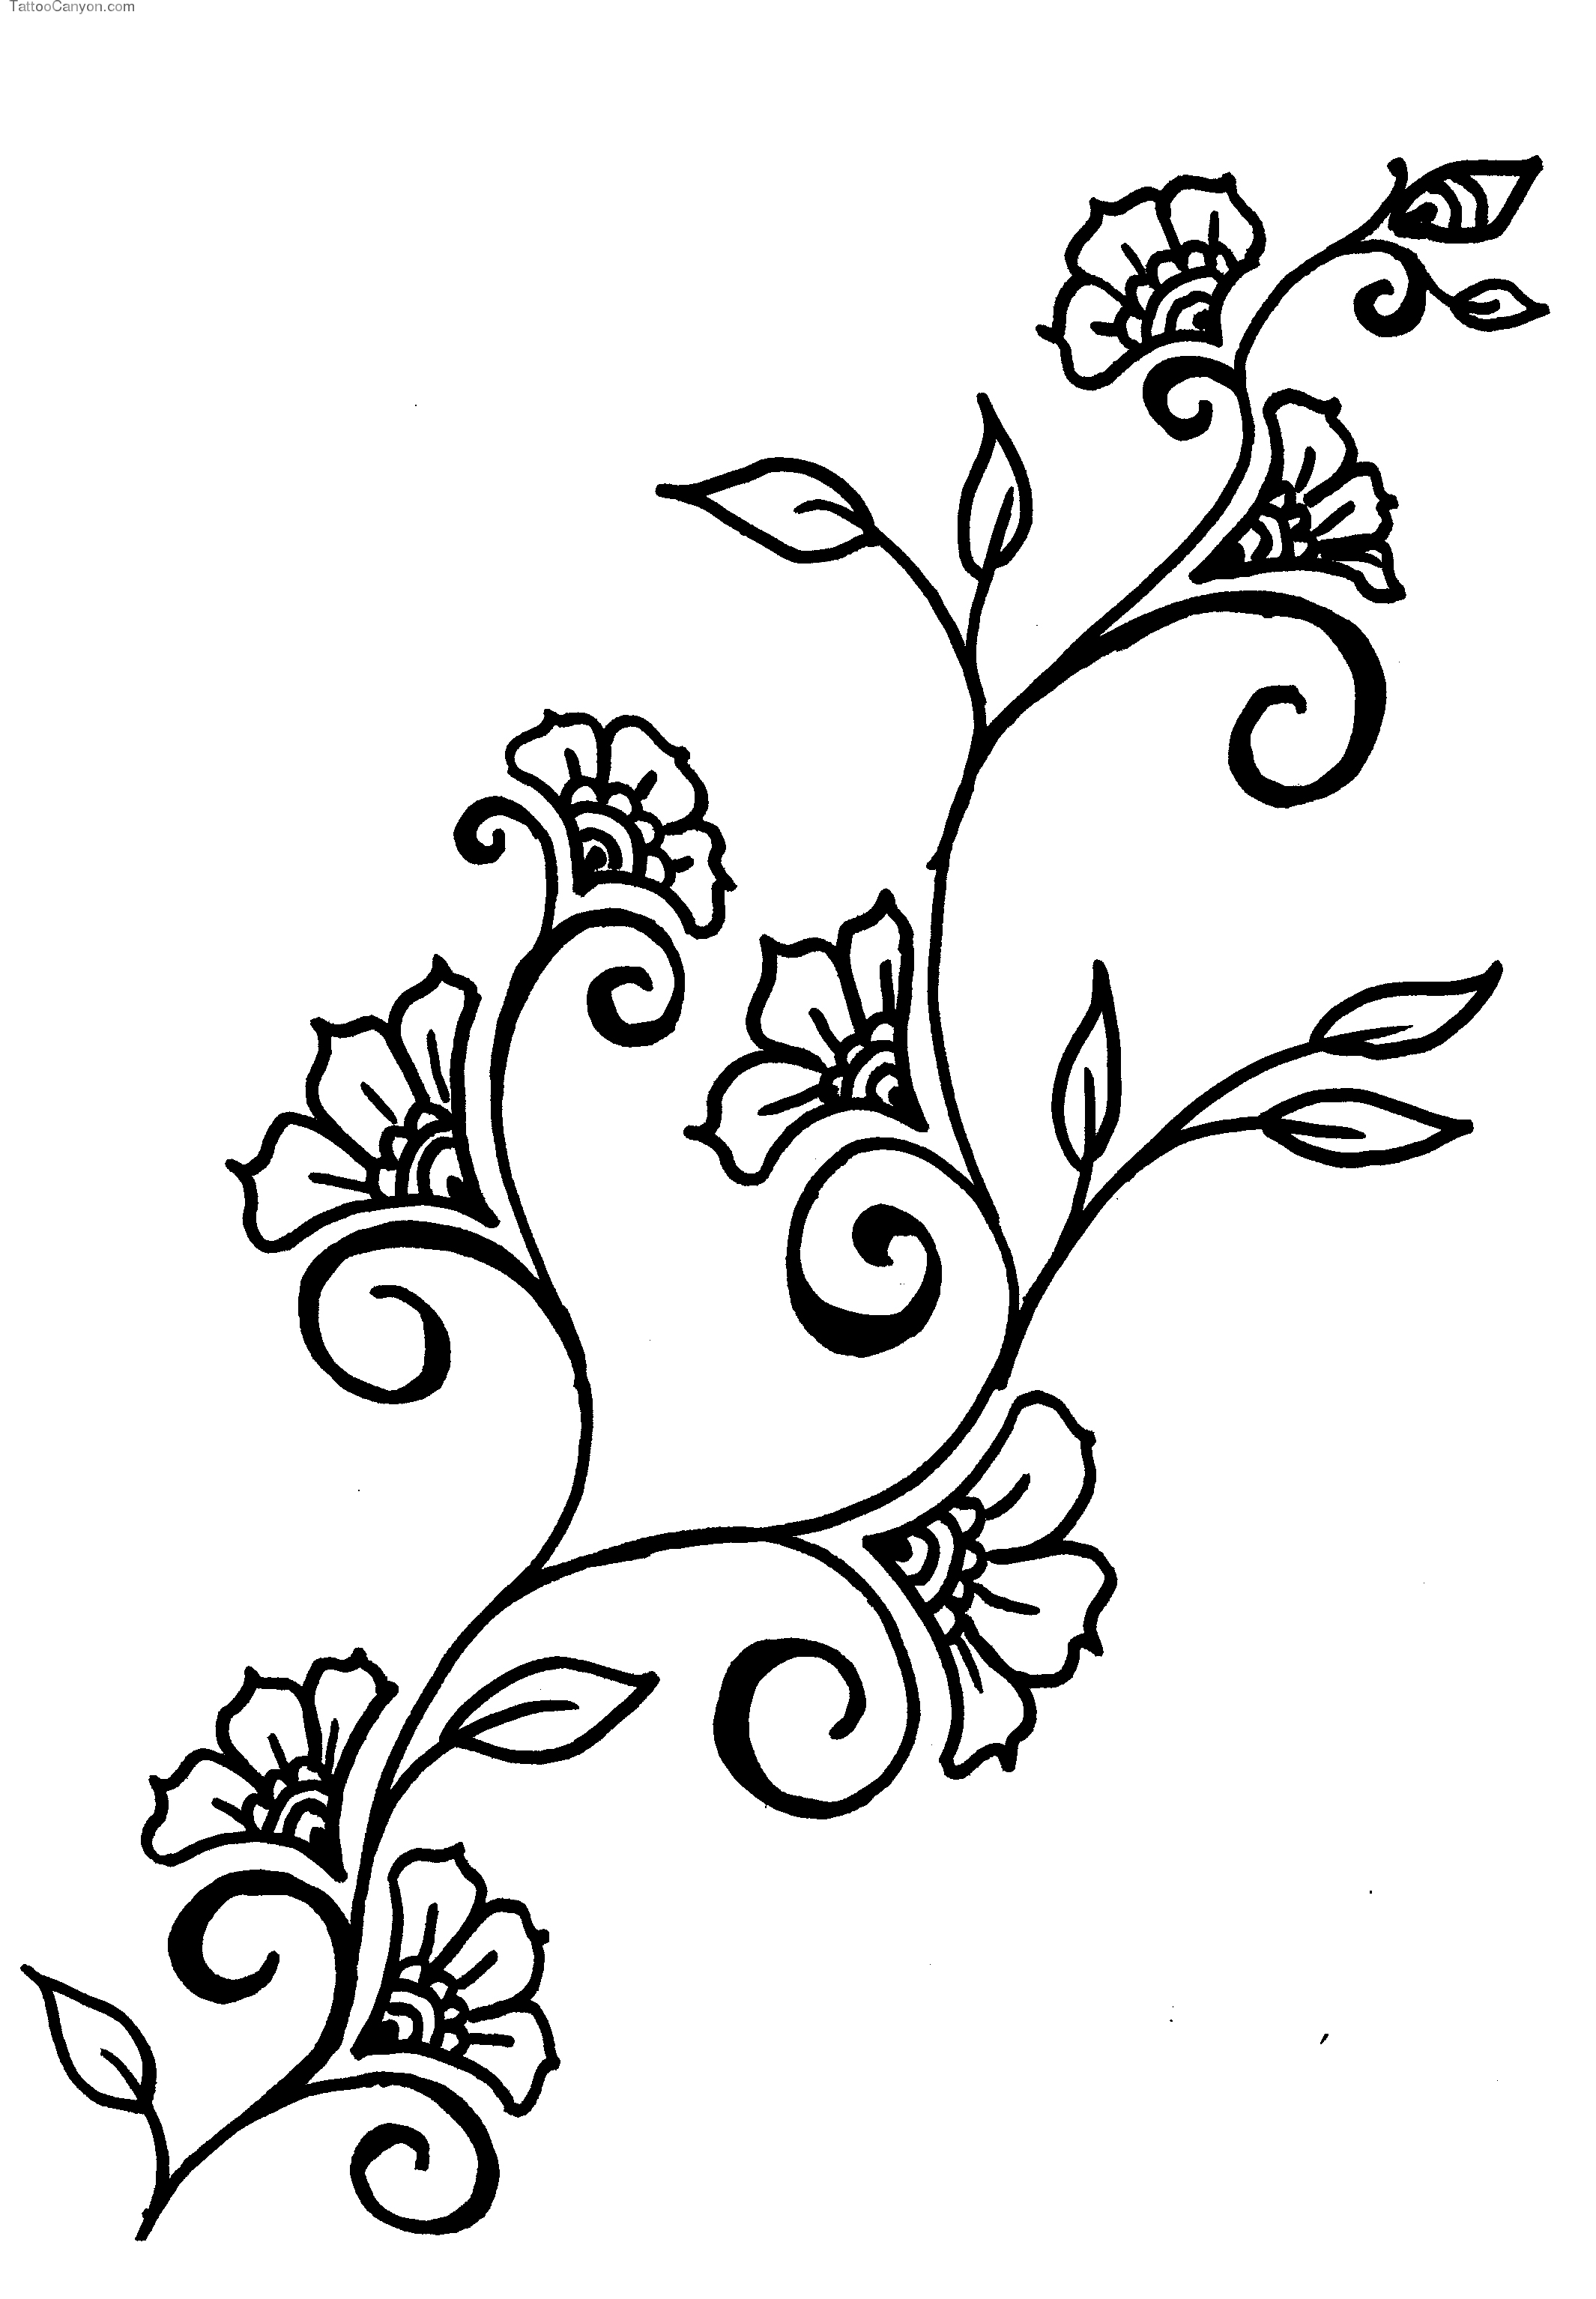 Vines flowers design drawings clipart best for Simple black and white drawing ideas